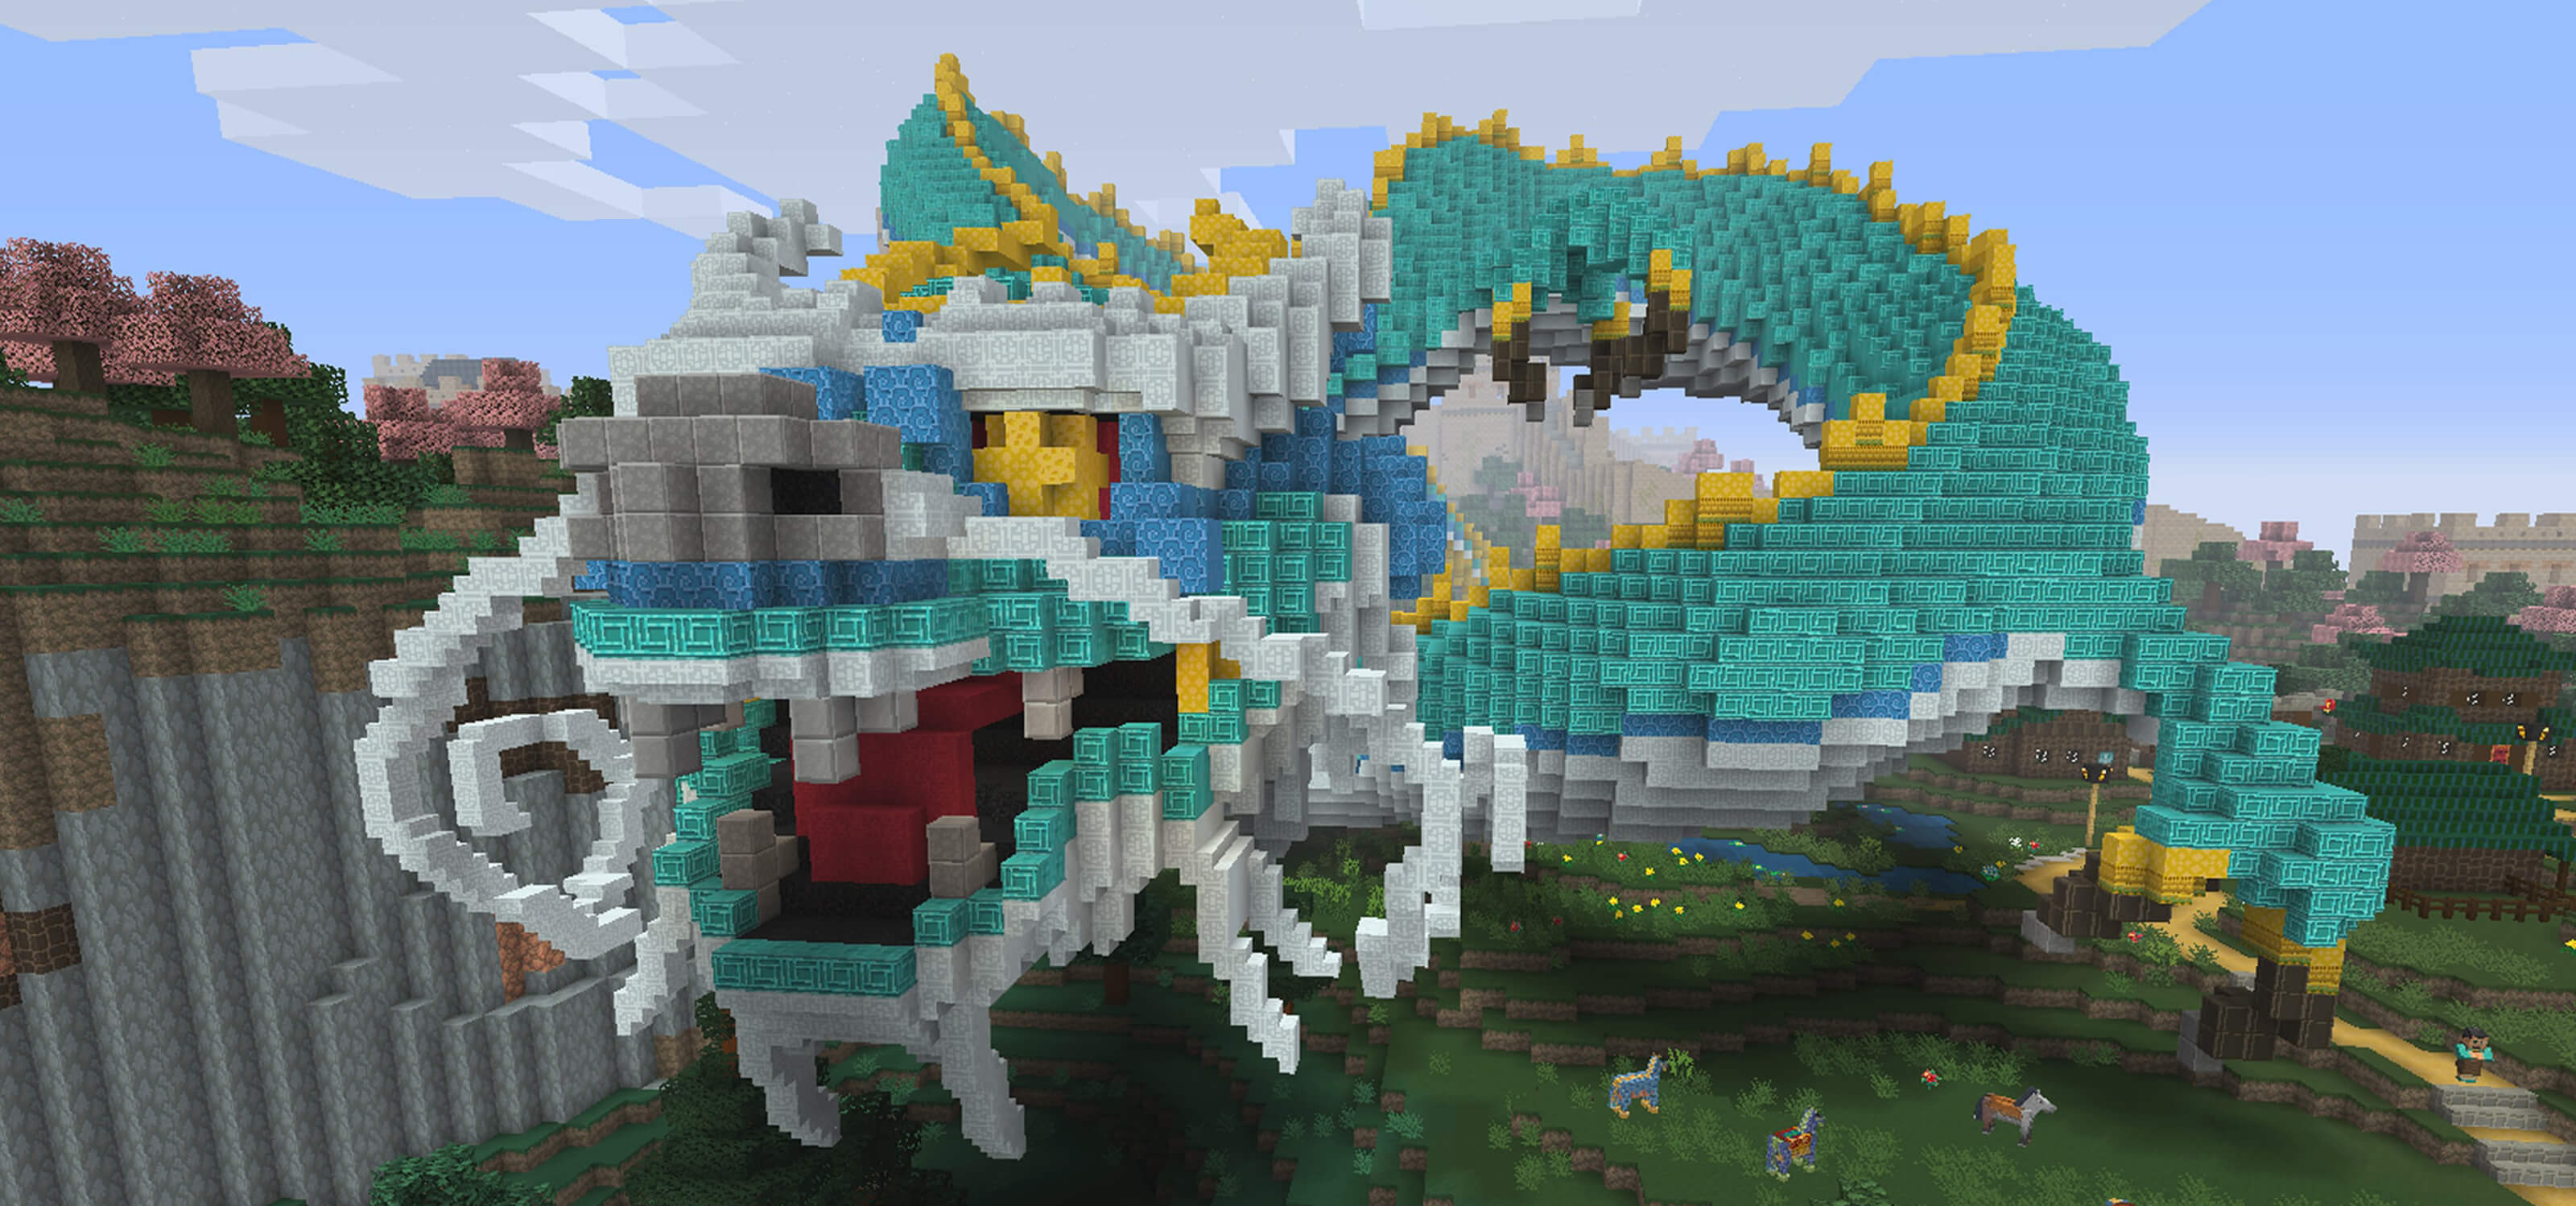 Screenshot of a huge Chinese-style dragon made out of blocks from Minecraft